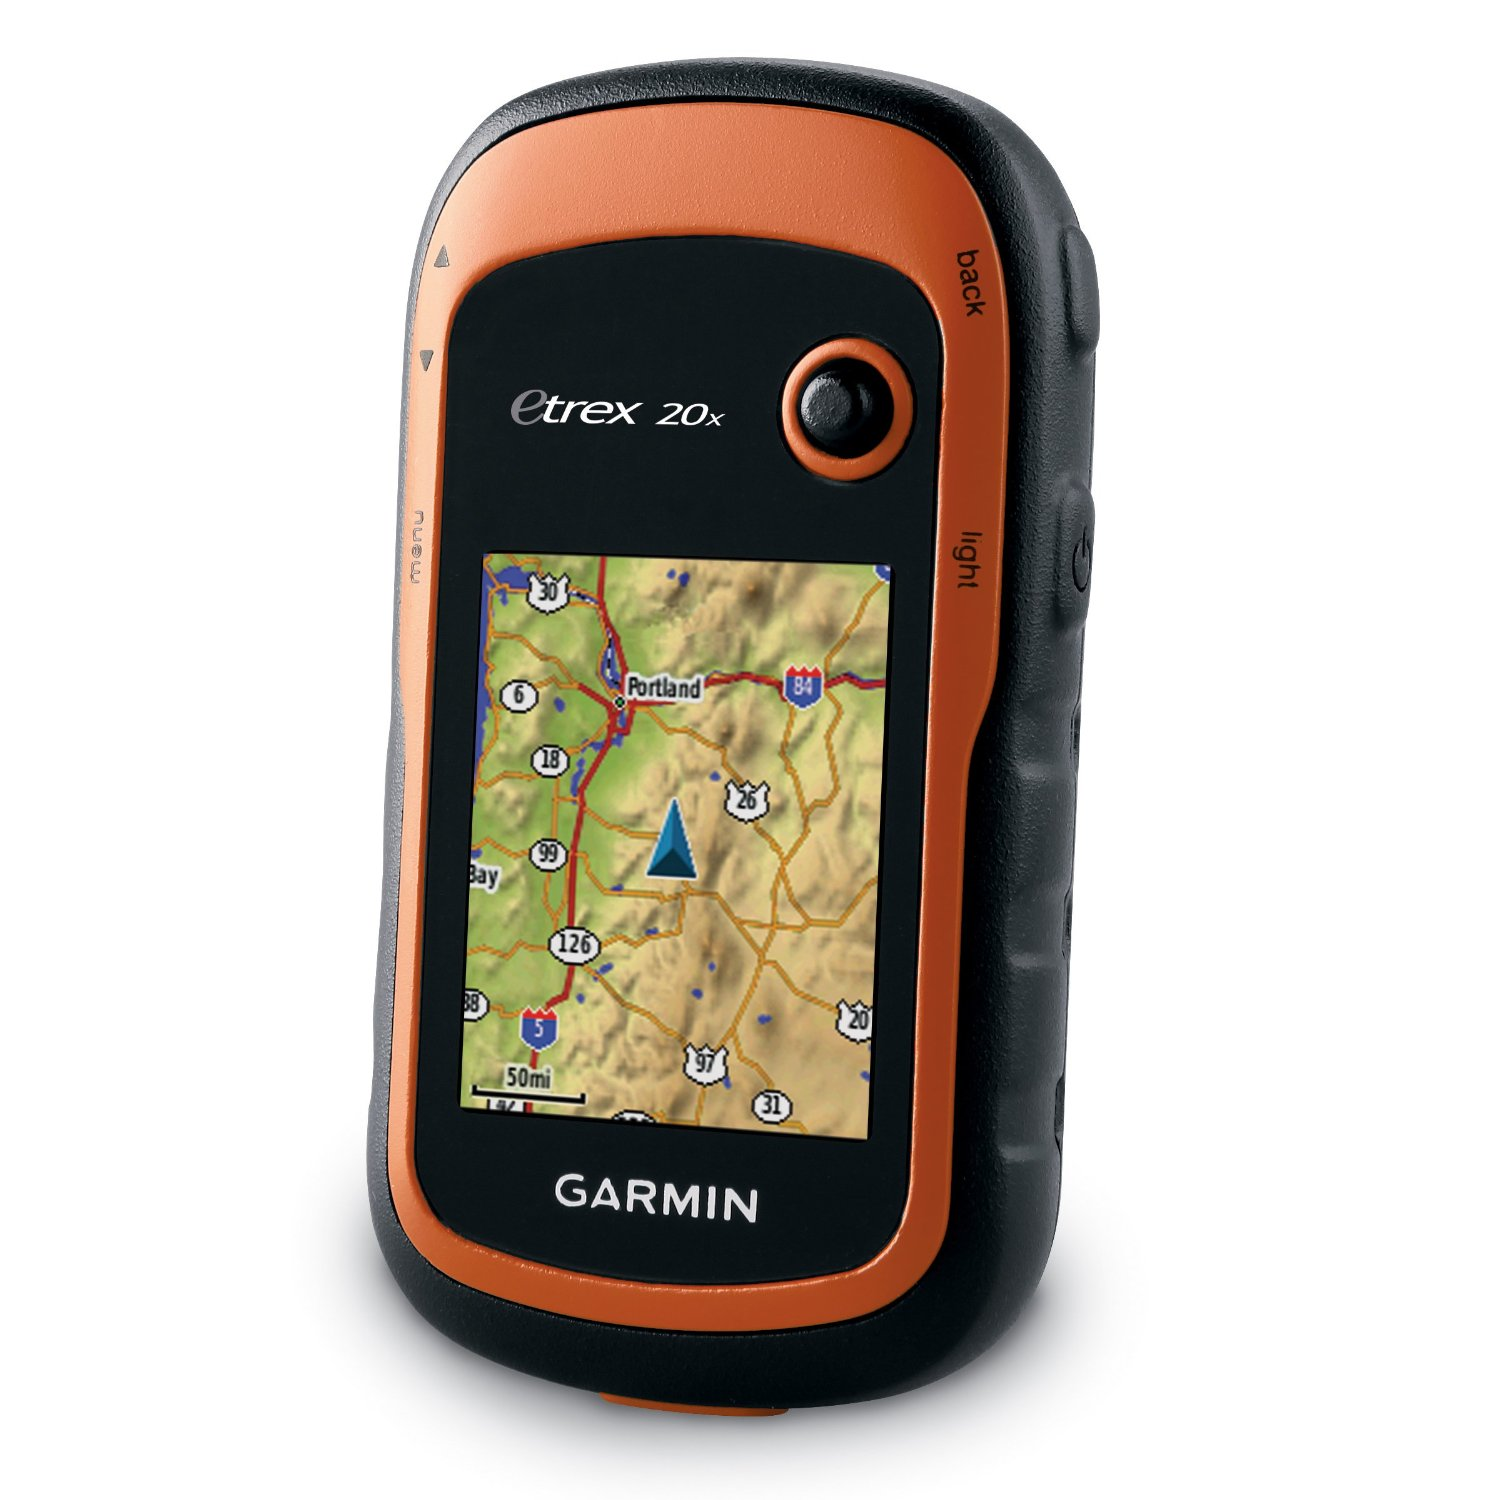 best hunting gps under $200 Garmin etrex 20